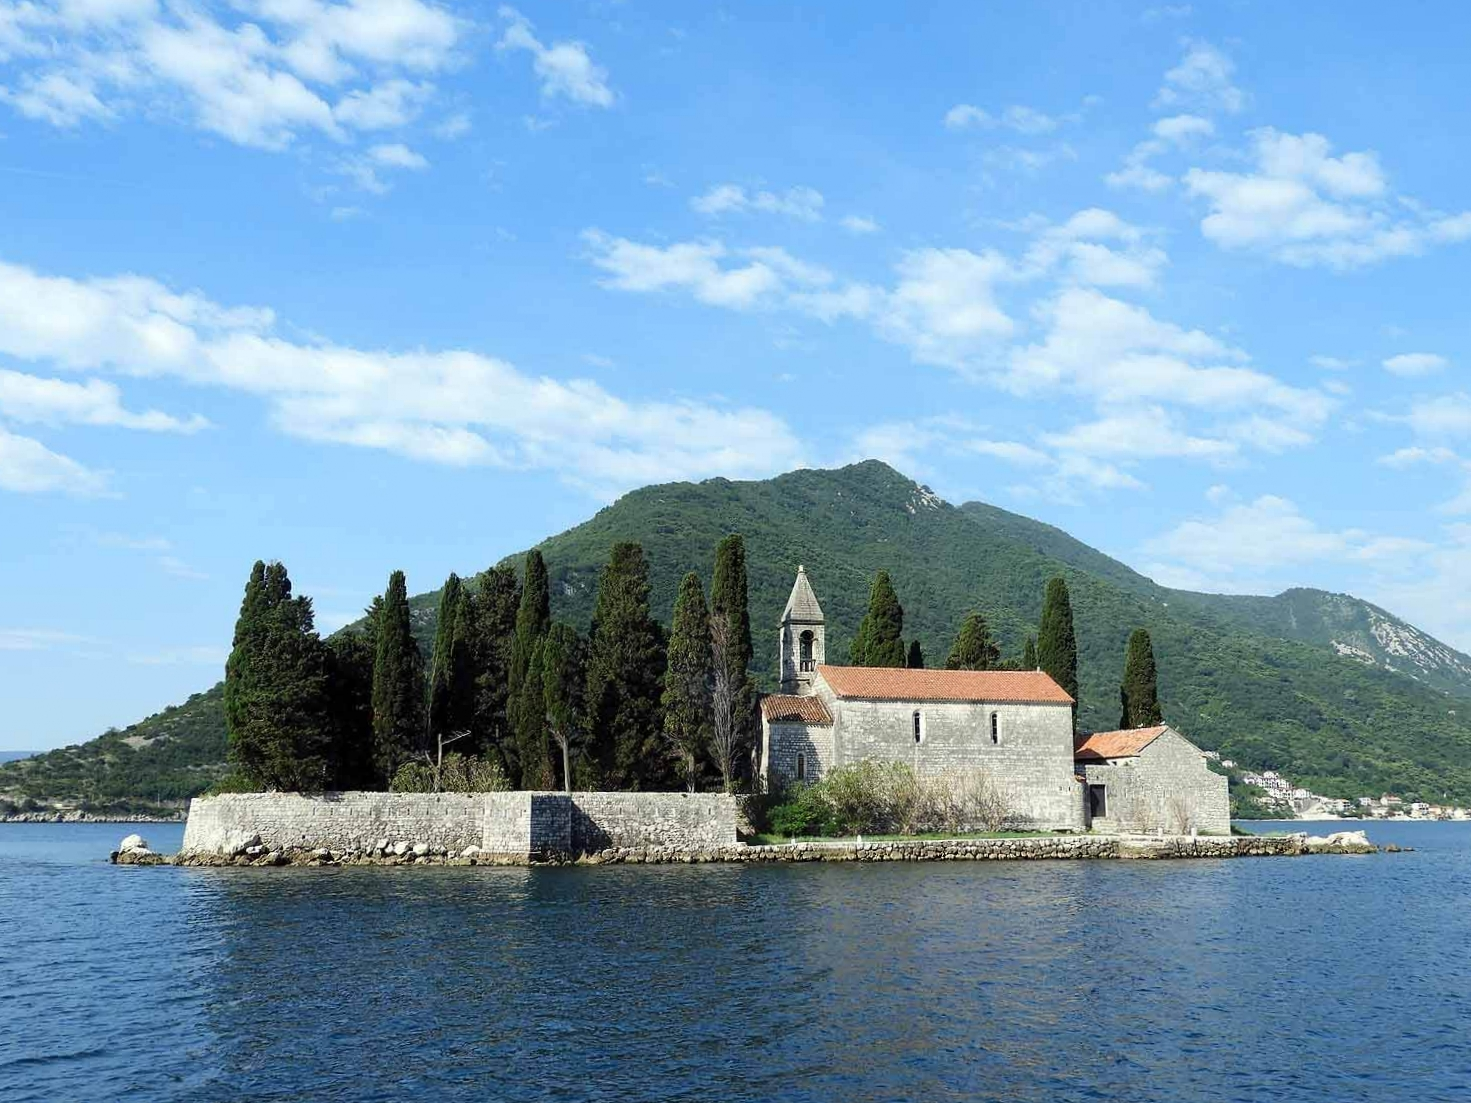 Sveti Dordje - Dont miss Our Lady of the Rocks Chapel located on a island in Kotor Bay.